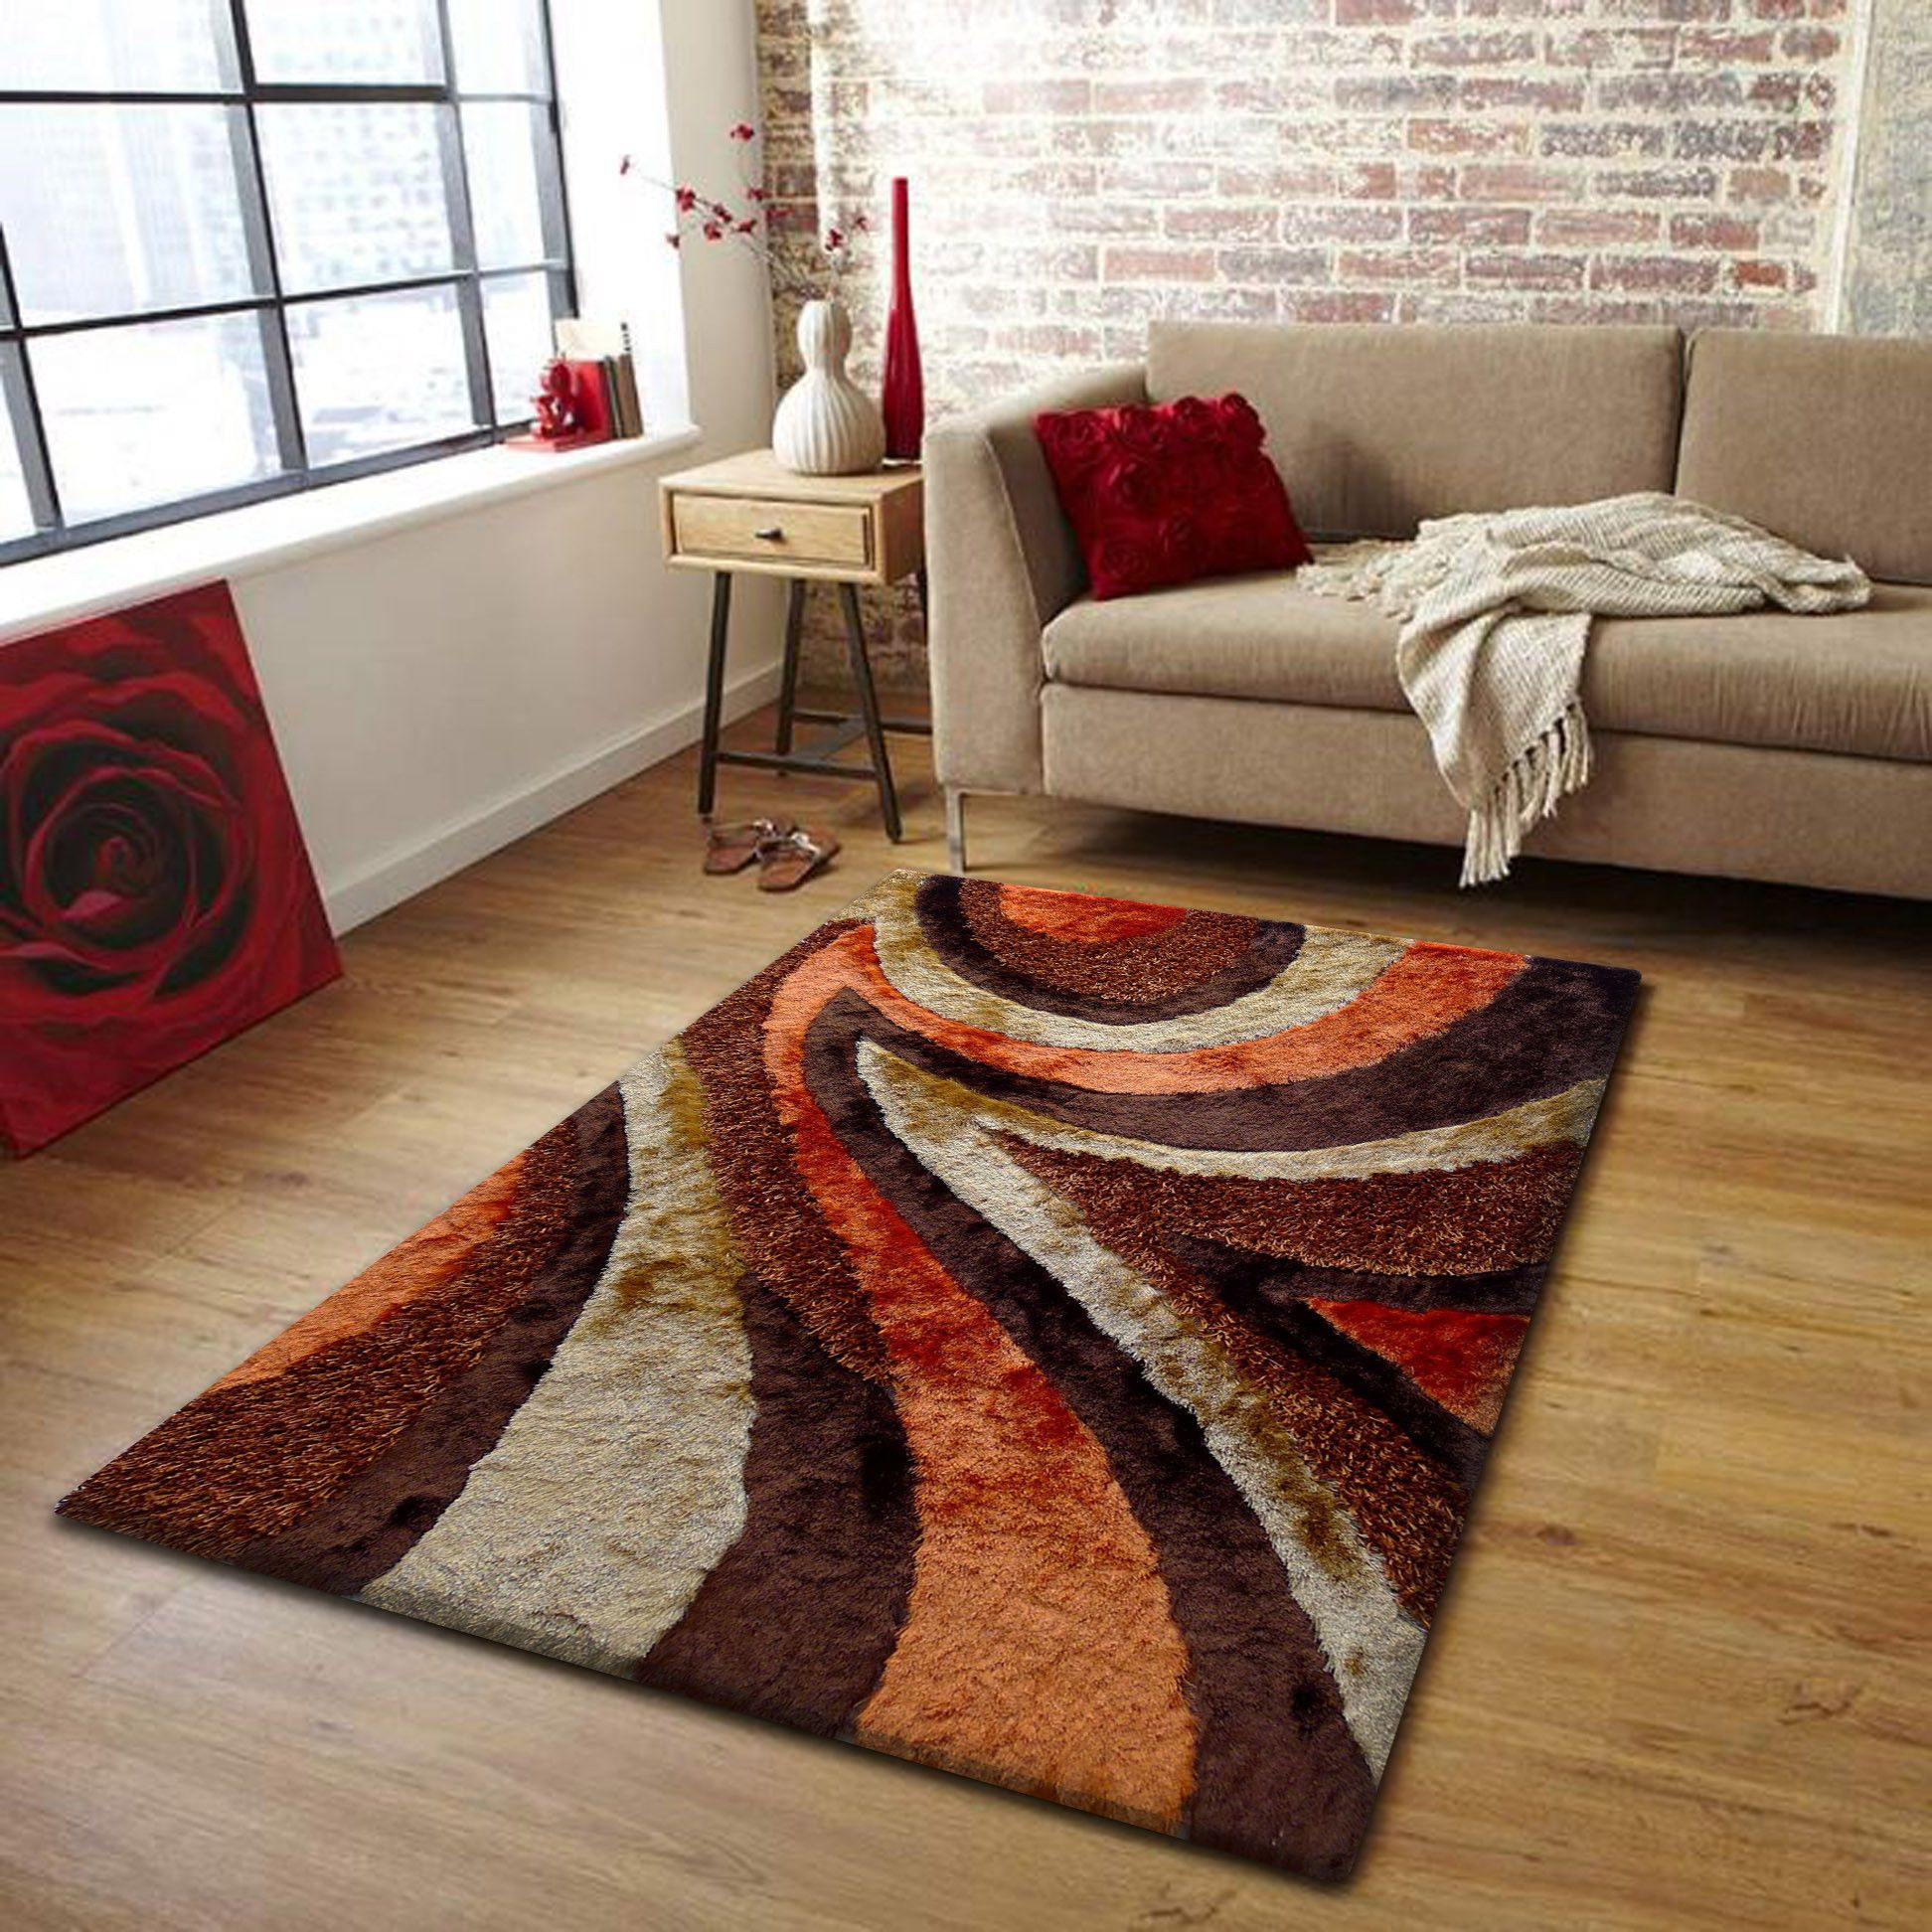 awesome 3 piece rug set in 2020 | rugs in living room